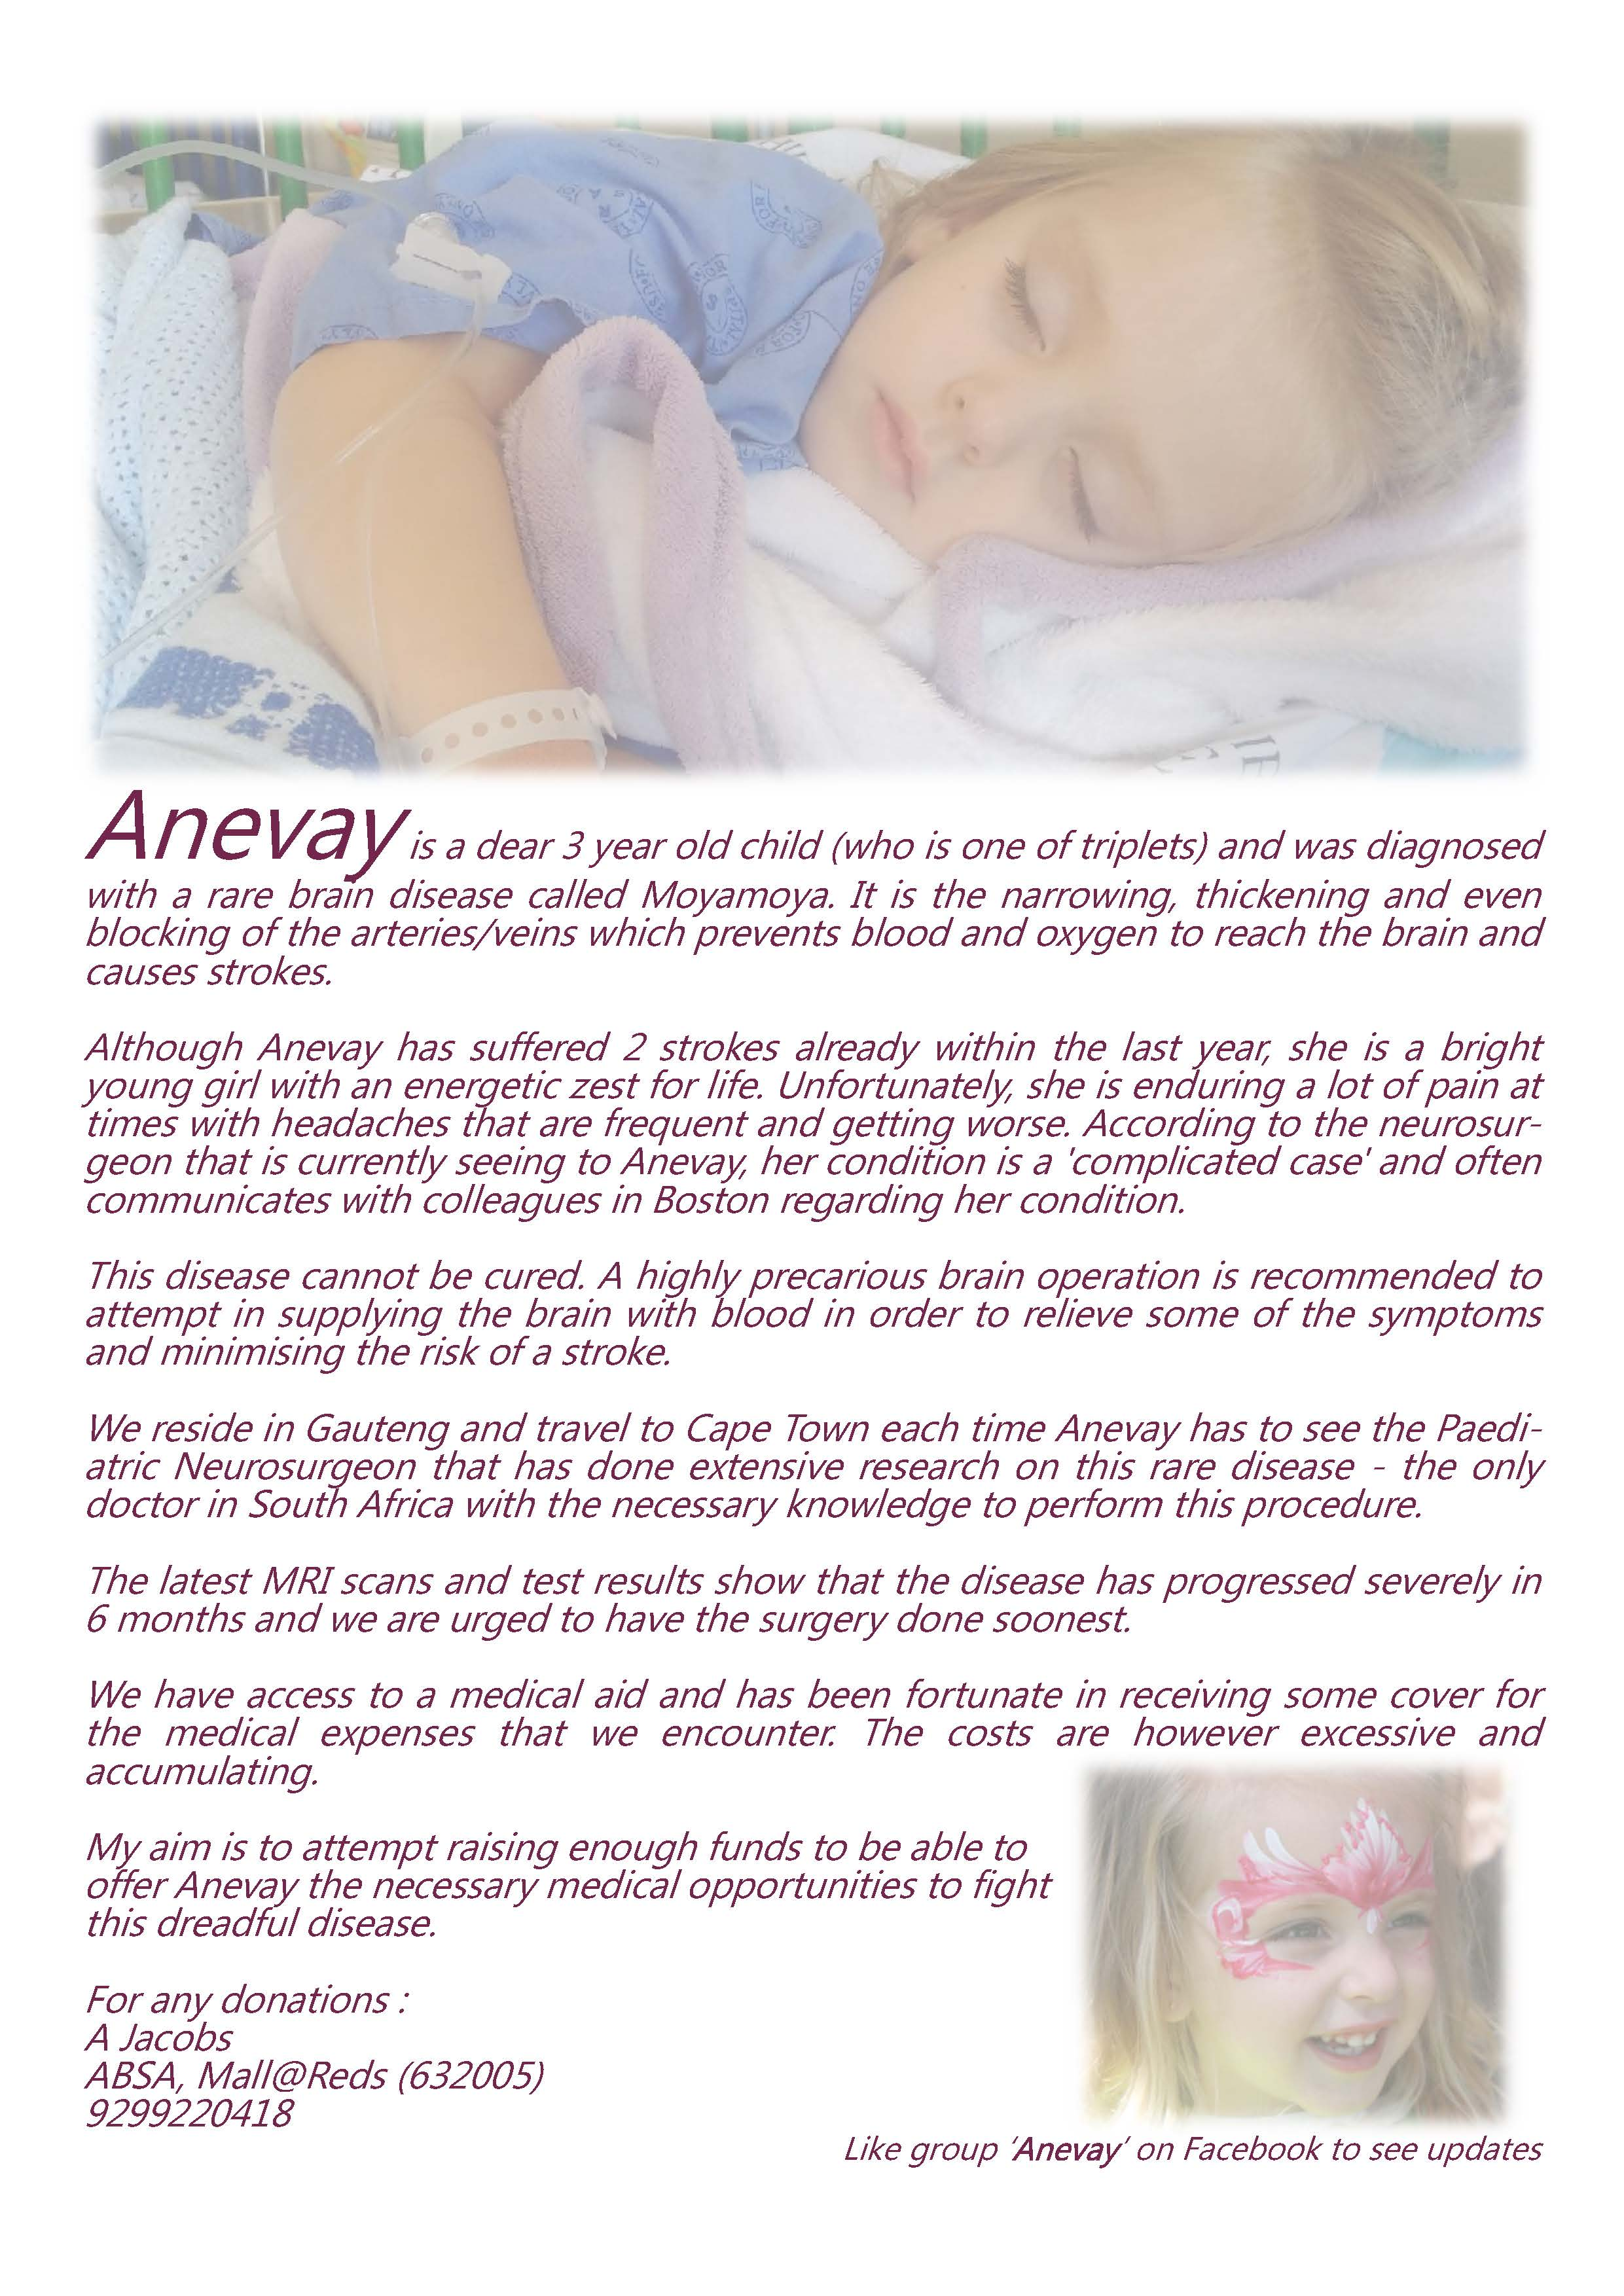 GMA Extra: Anevay on the road to recovery